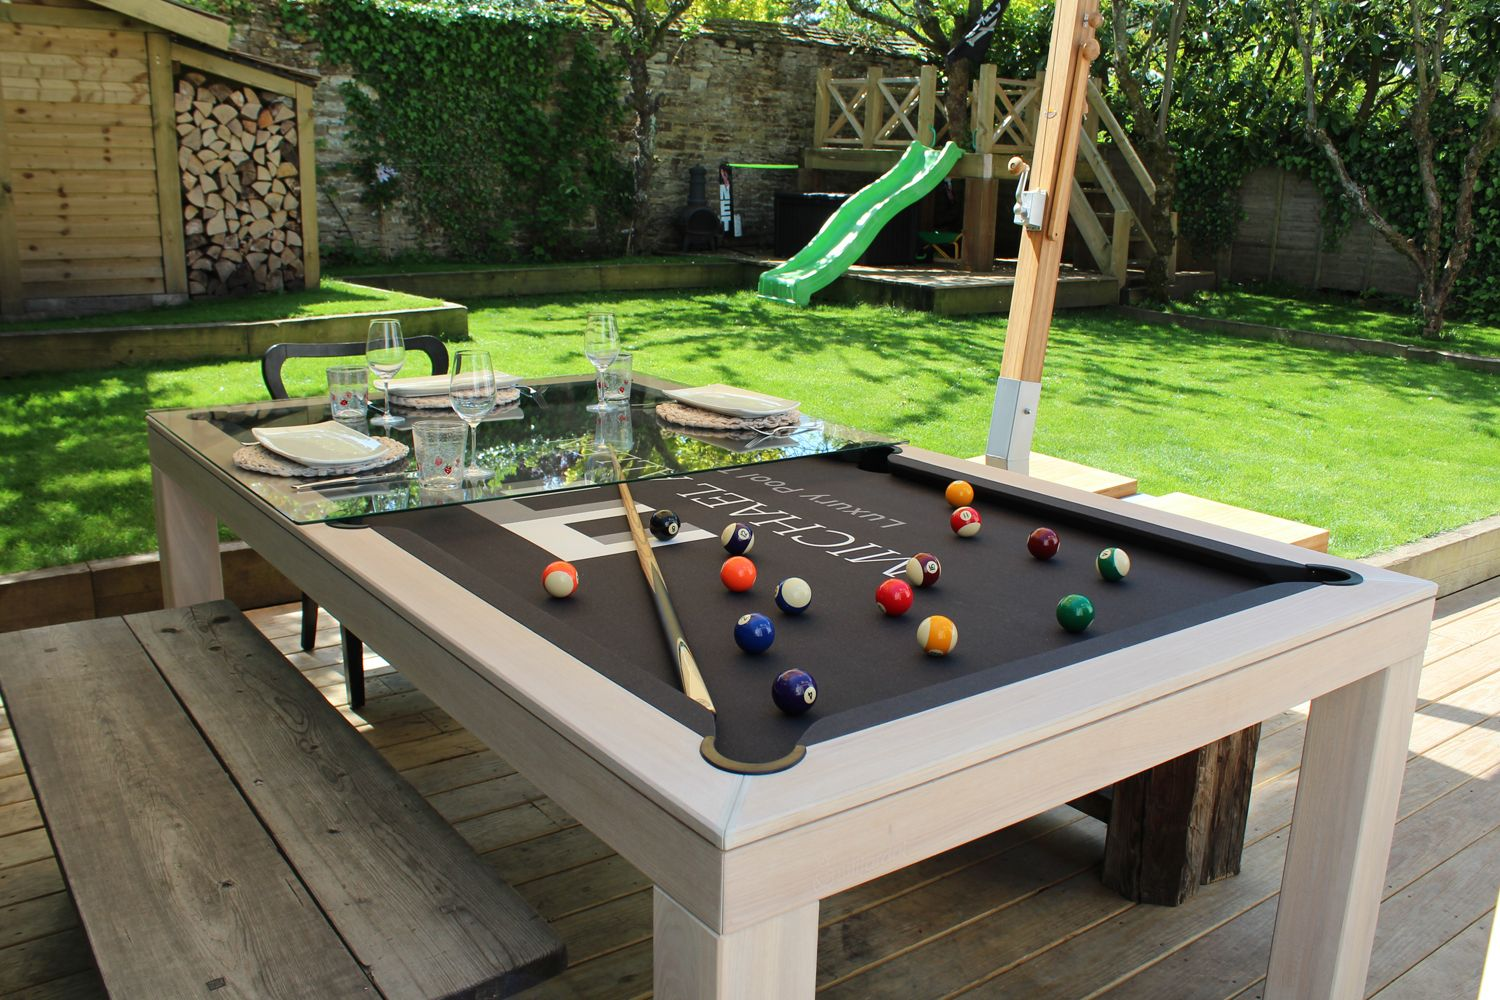 Outdoor Pool Table   Shown As A 7u0027 English Pool Table With A Glass Top In  Colour #33 (bleached Oak).